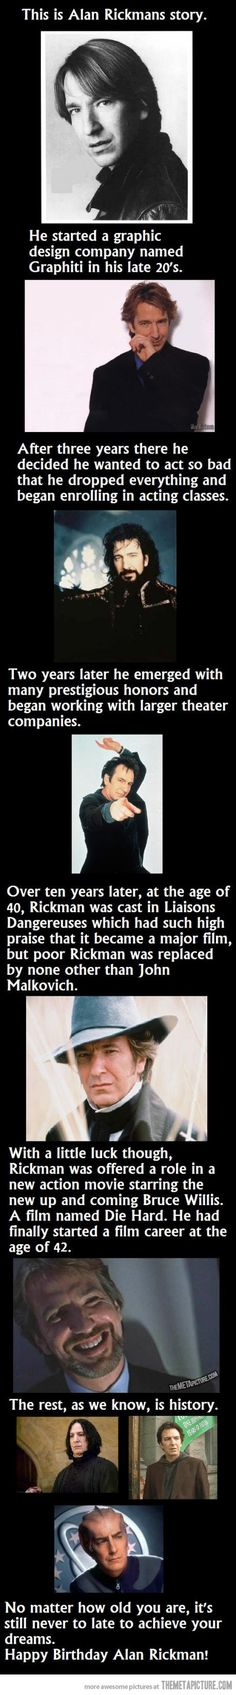 Happy Birthday Alan Rickman. And thanks for carrying the torch. It gives late bloomers like me hope.